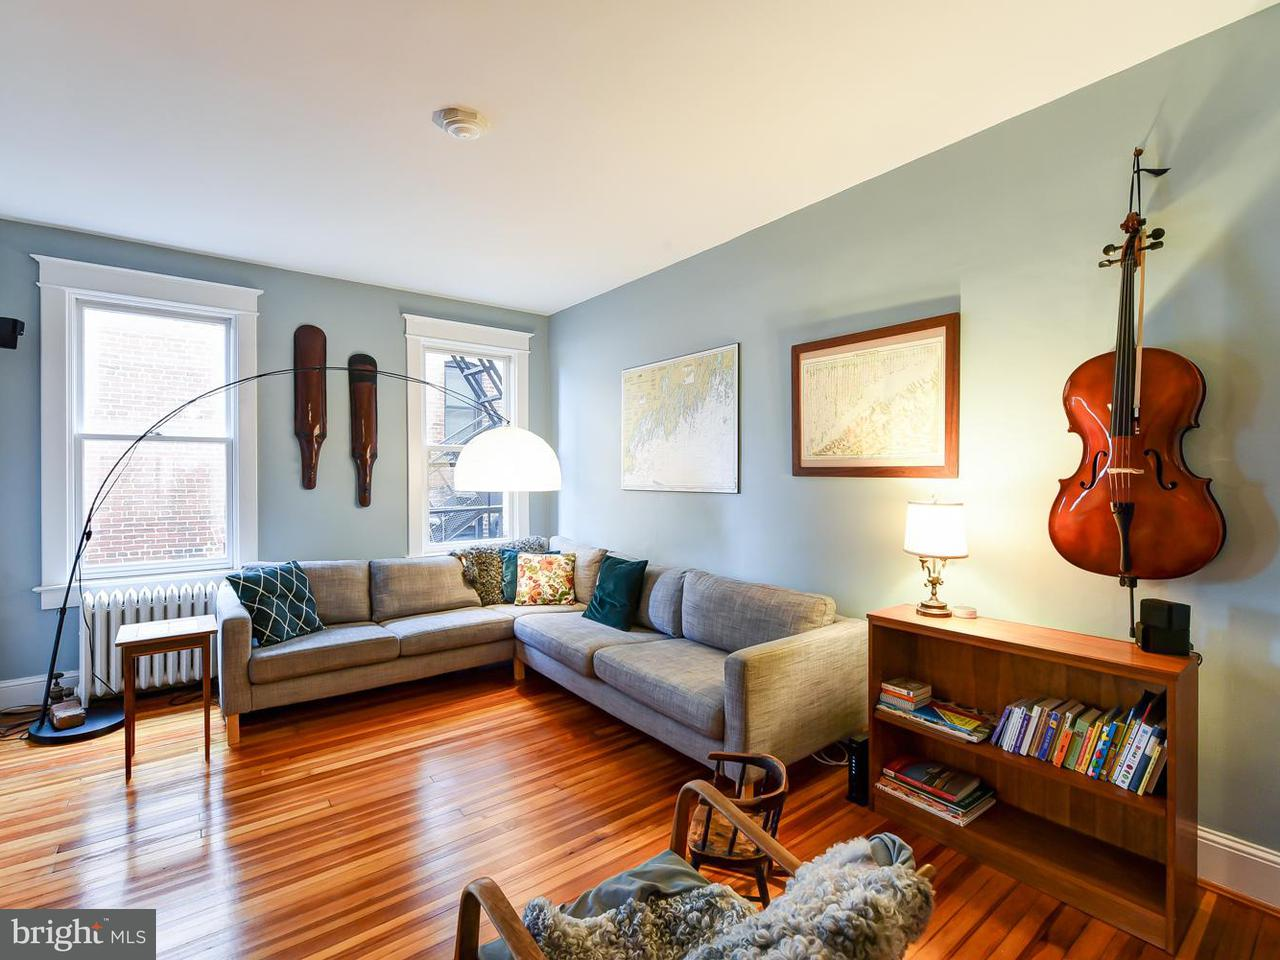 Condominium for Sale at 1789 Lanier Pl Nw #23 1789 Lanier Pl Nw #23 Washington, District Of Columbia 20009 United States